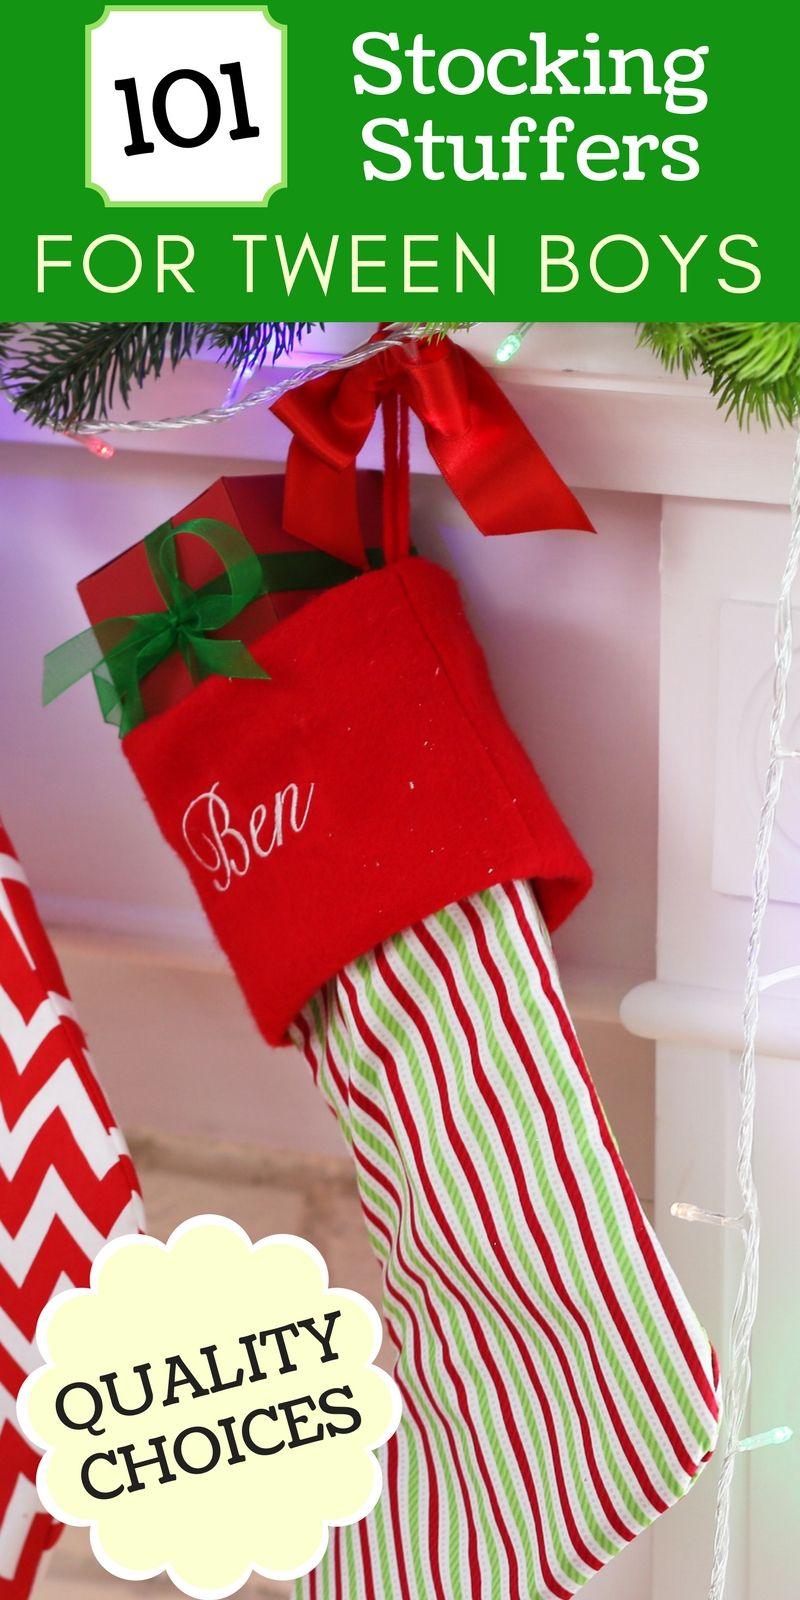 101+ Stocking Stuffer Ideas for Tween Boys That Aren't ...